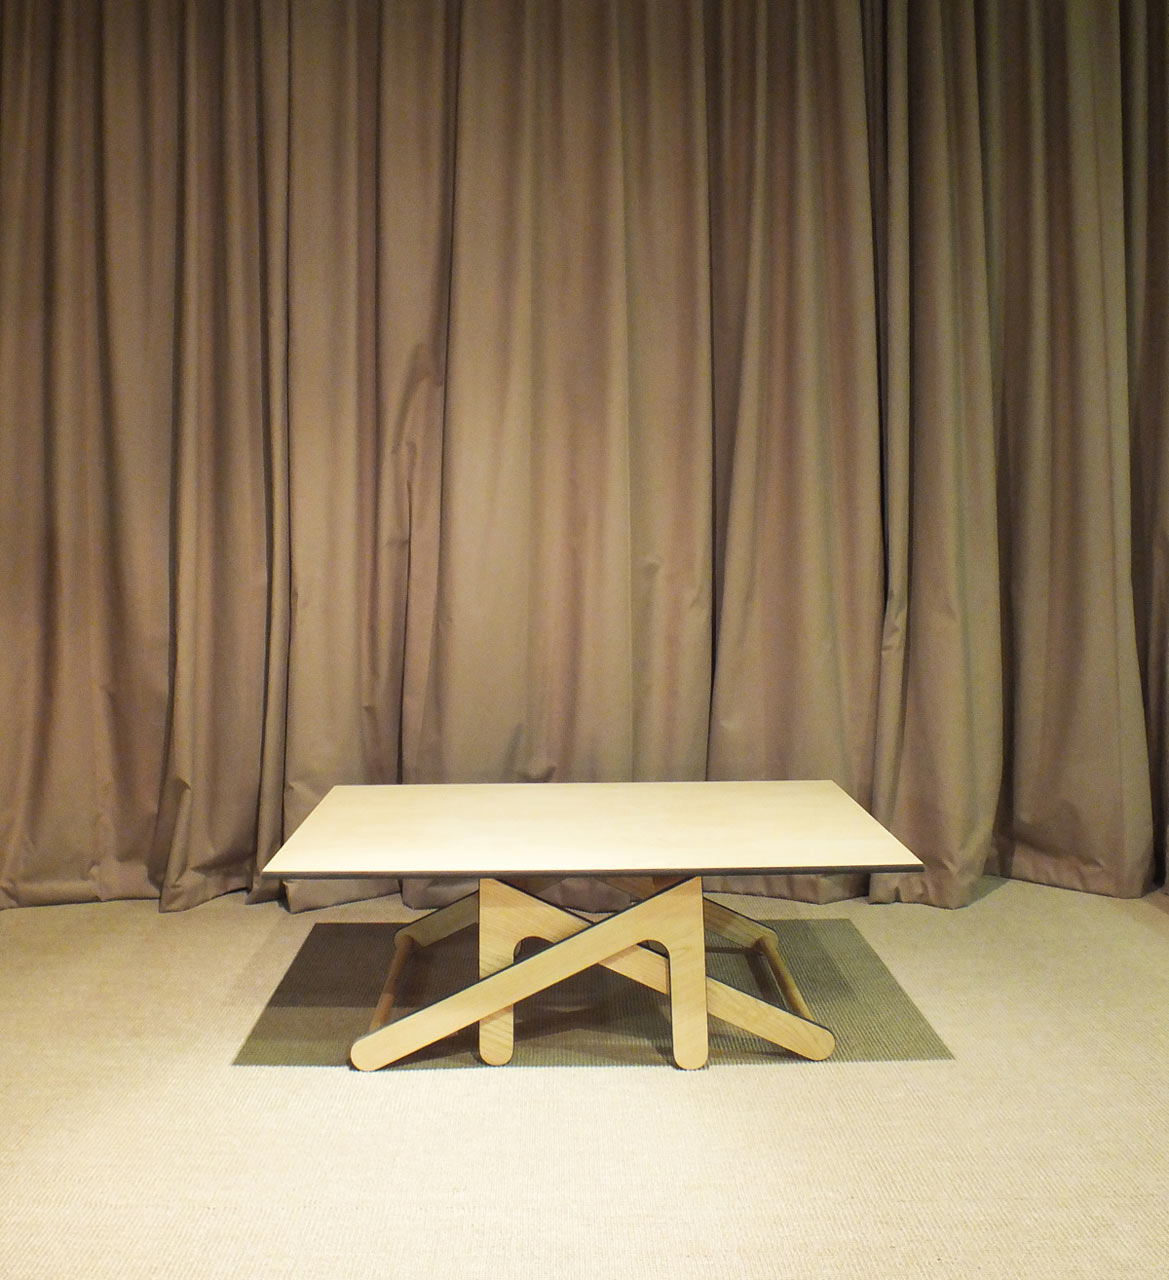 A Coffee Table that Transforms into a Dining Table ... - A Coffee Table That Transforms Into A Dining Table - Design Milk